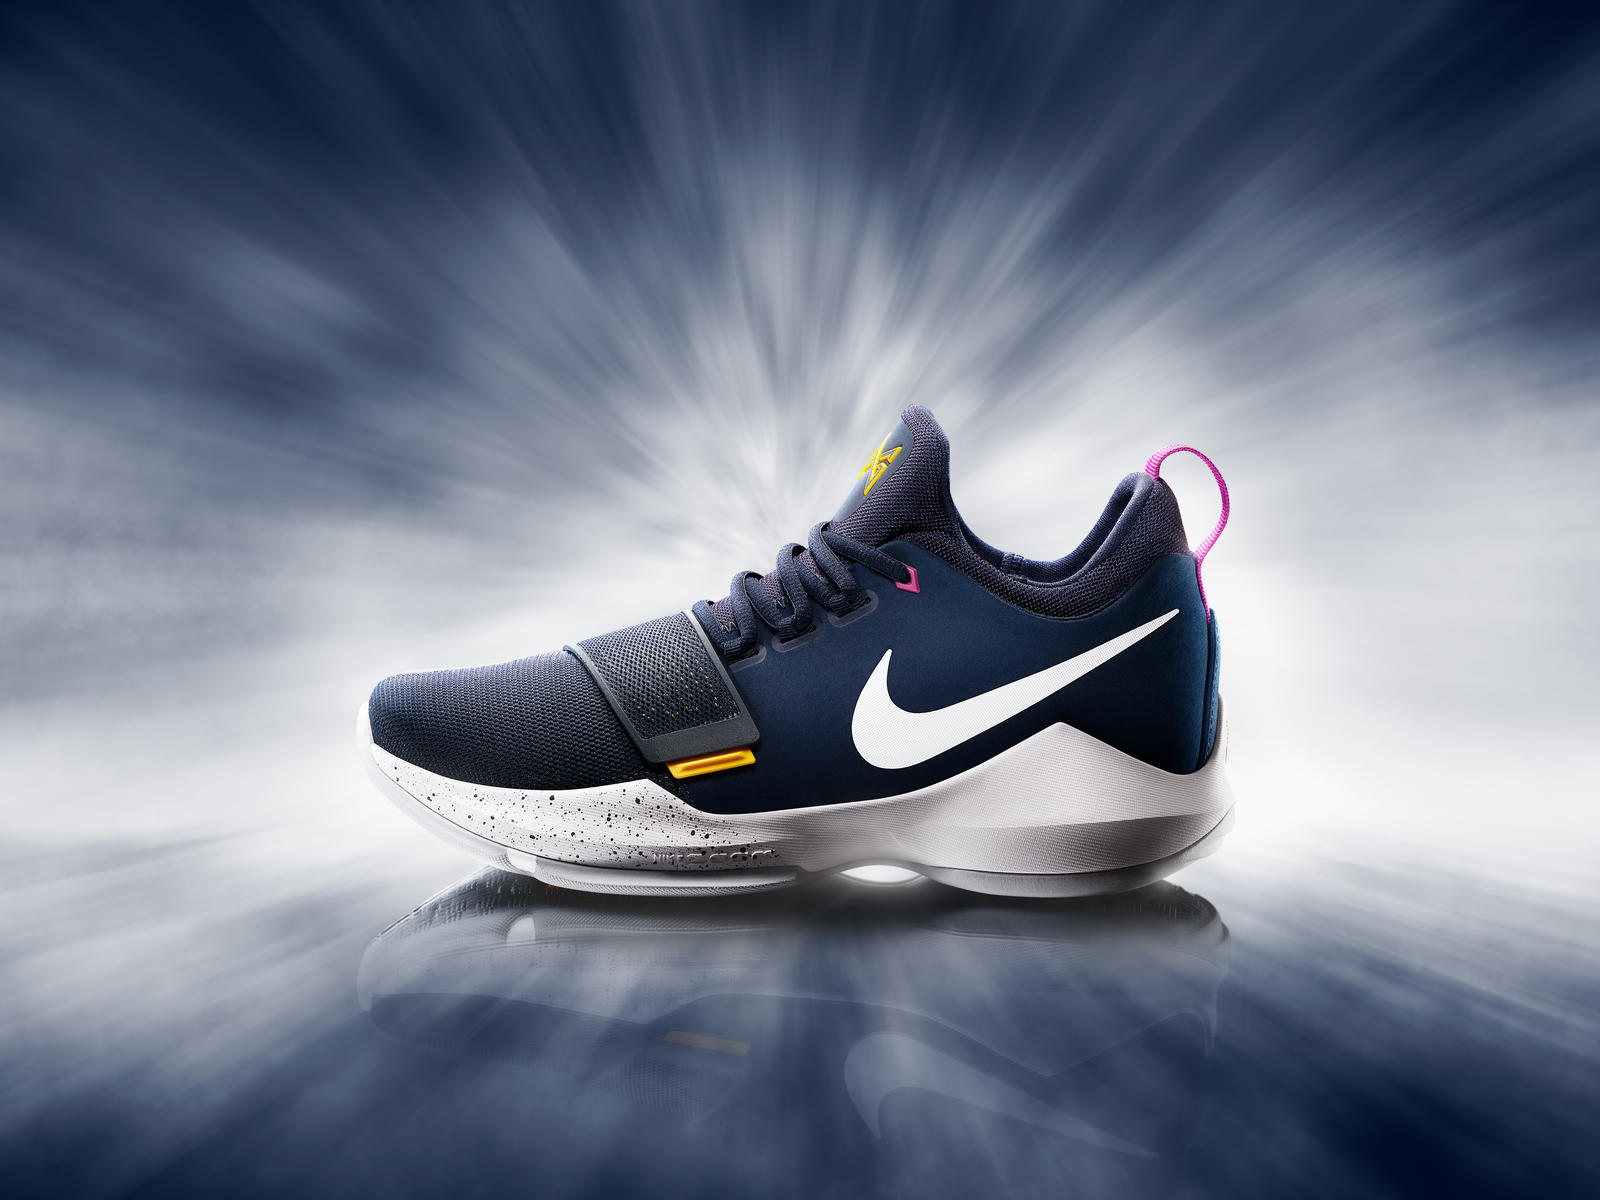 92f2828c2fa4 10 Things You Don t Know About the PG1 7. Tailored to Paul George s ...